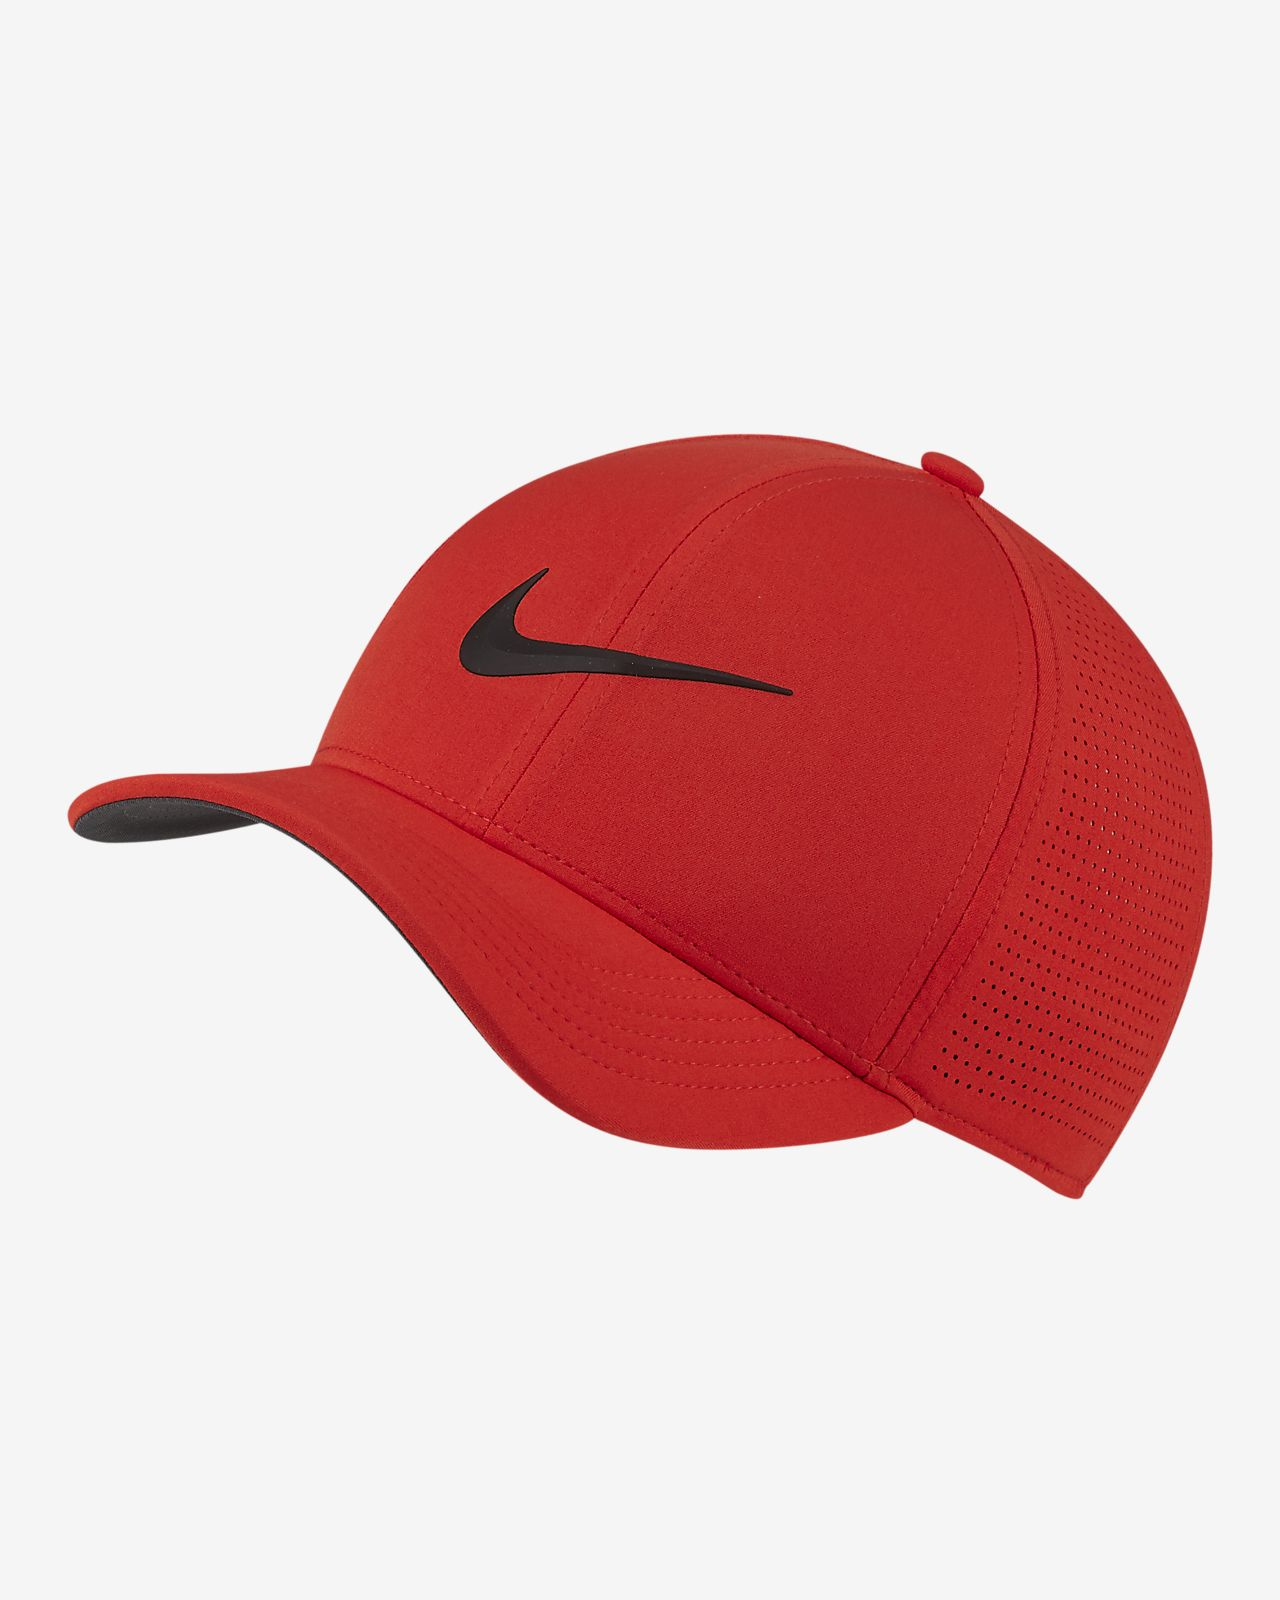 Nike Air Max Rouge Chaussures Pour Hommes,Casquette Baseball